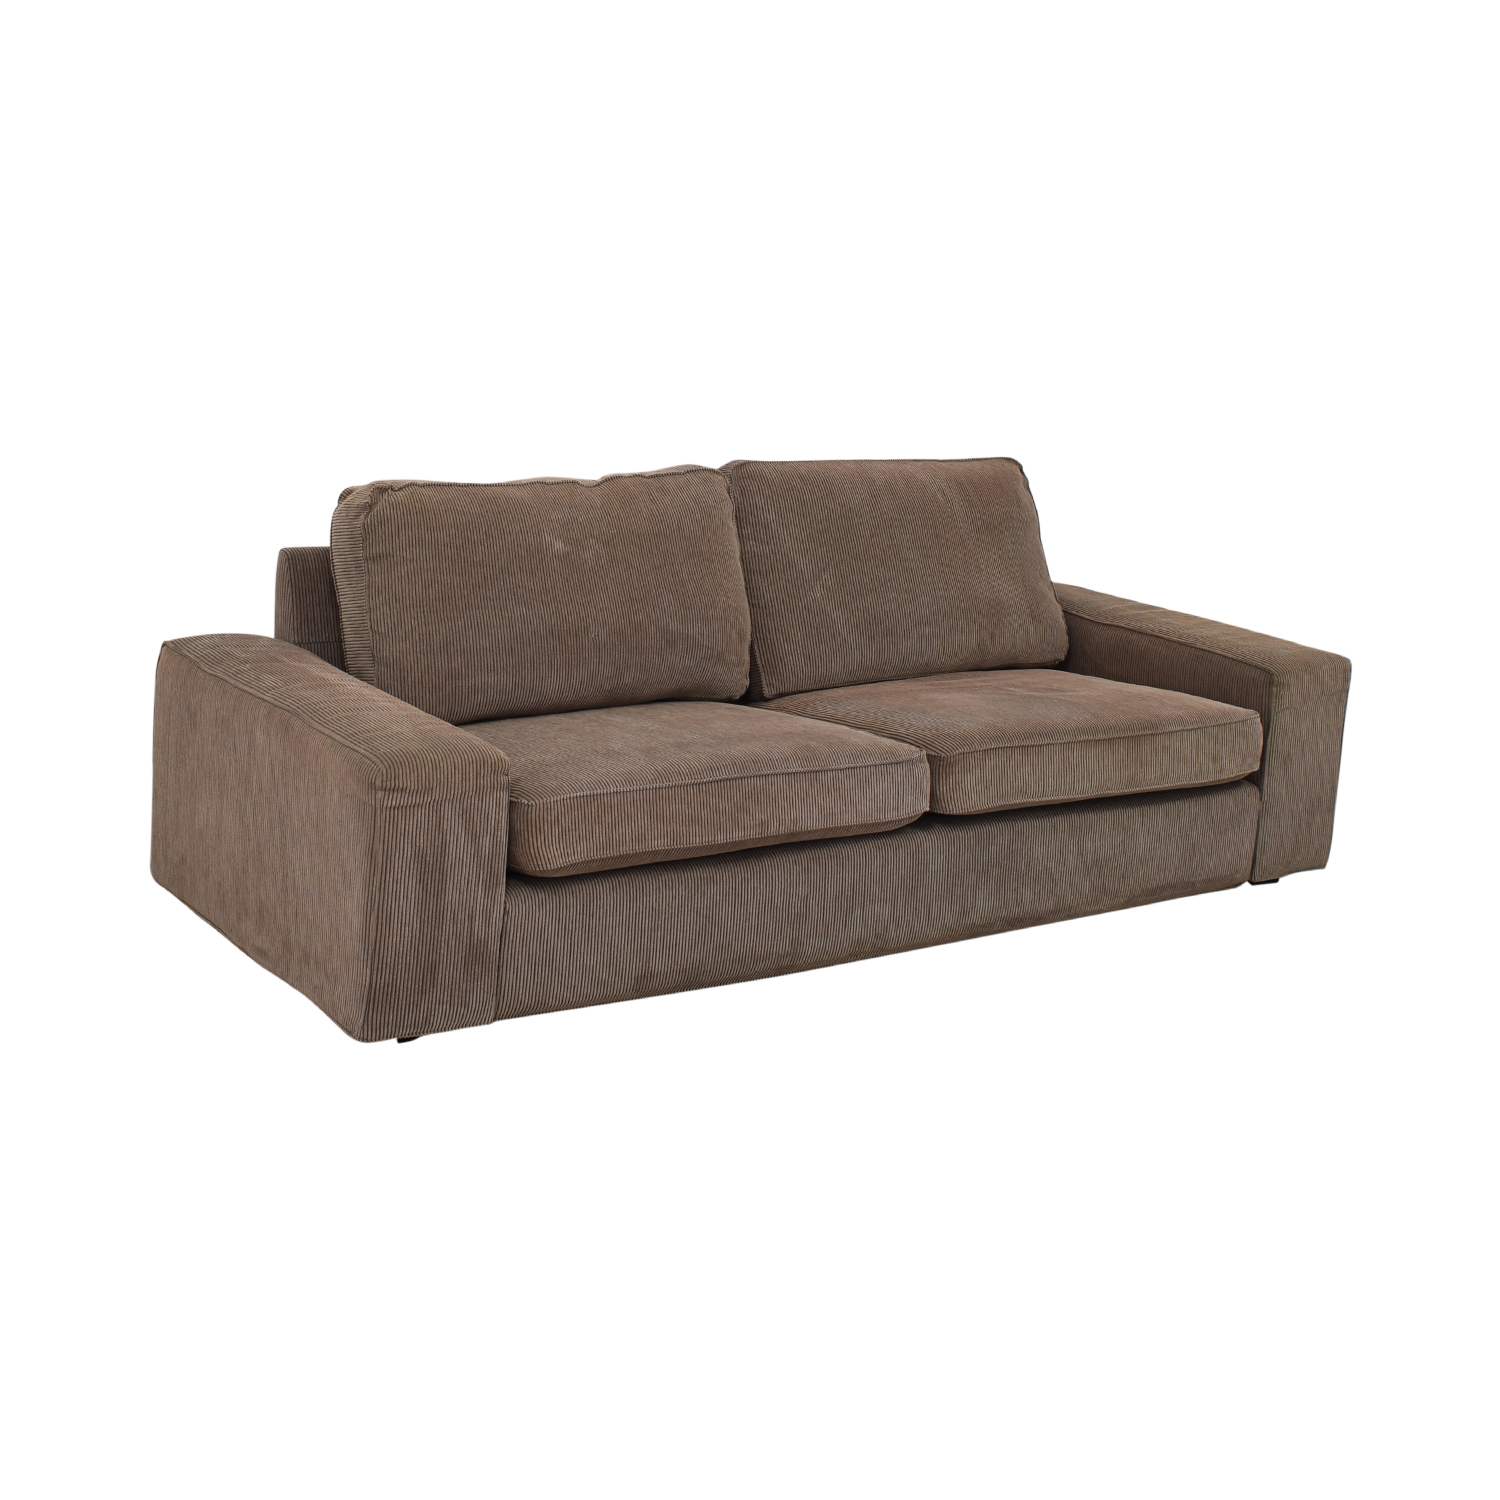 Pleasing 76 Off Ikea Ikea Kivik Corduroy Sofa Sofas Gmtry Best Dining Table And Chair Ideas Images Gmtryco